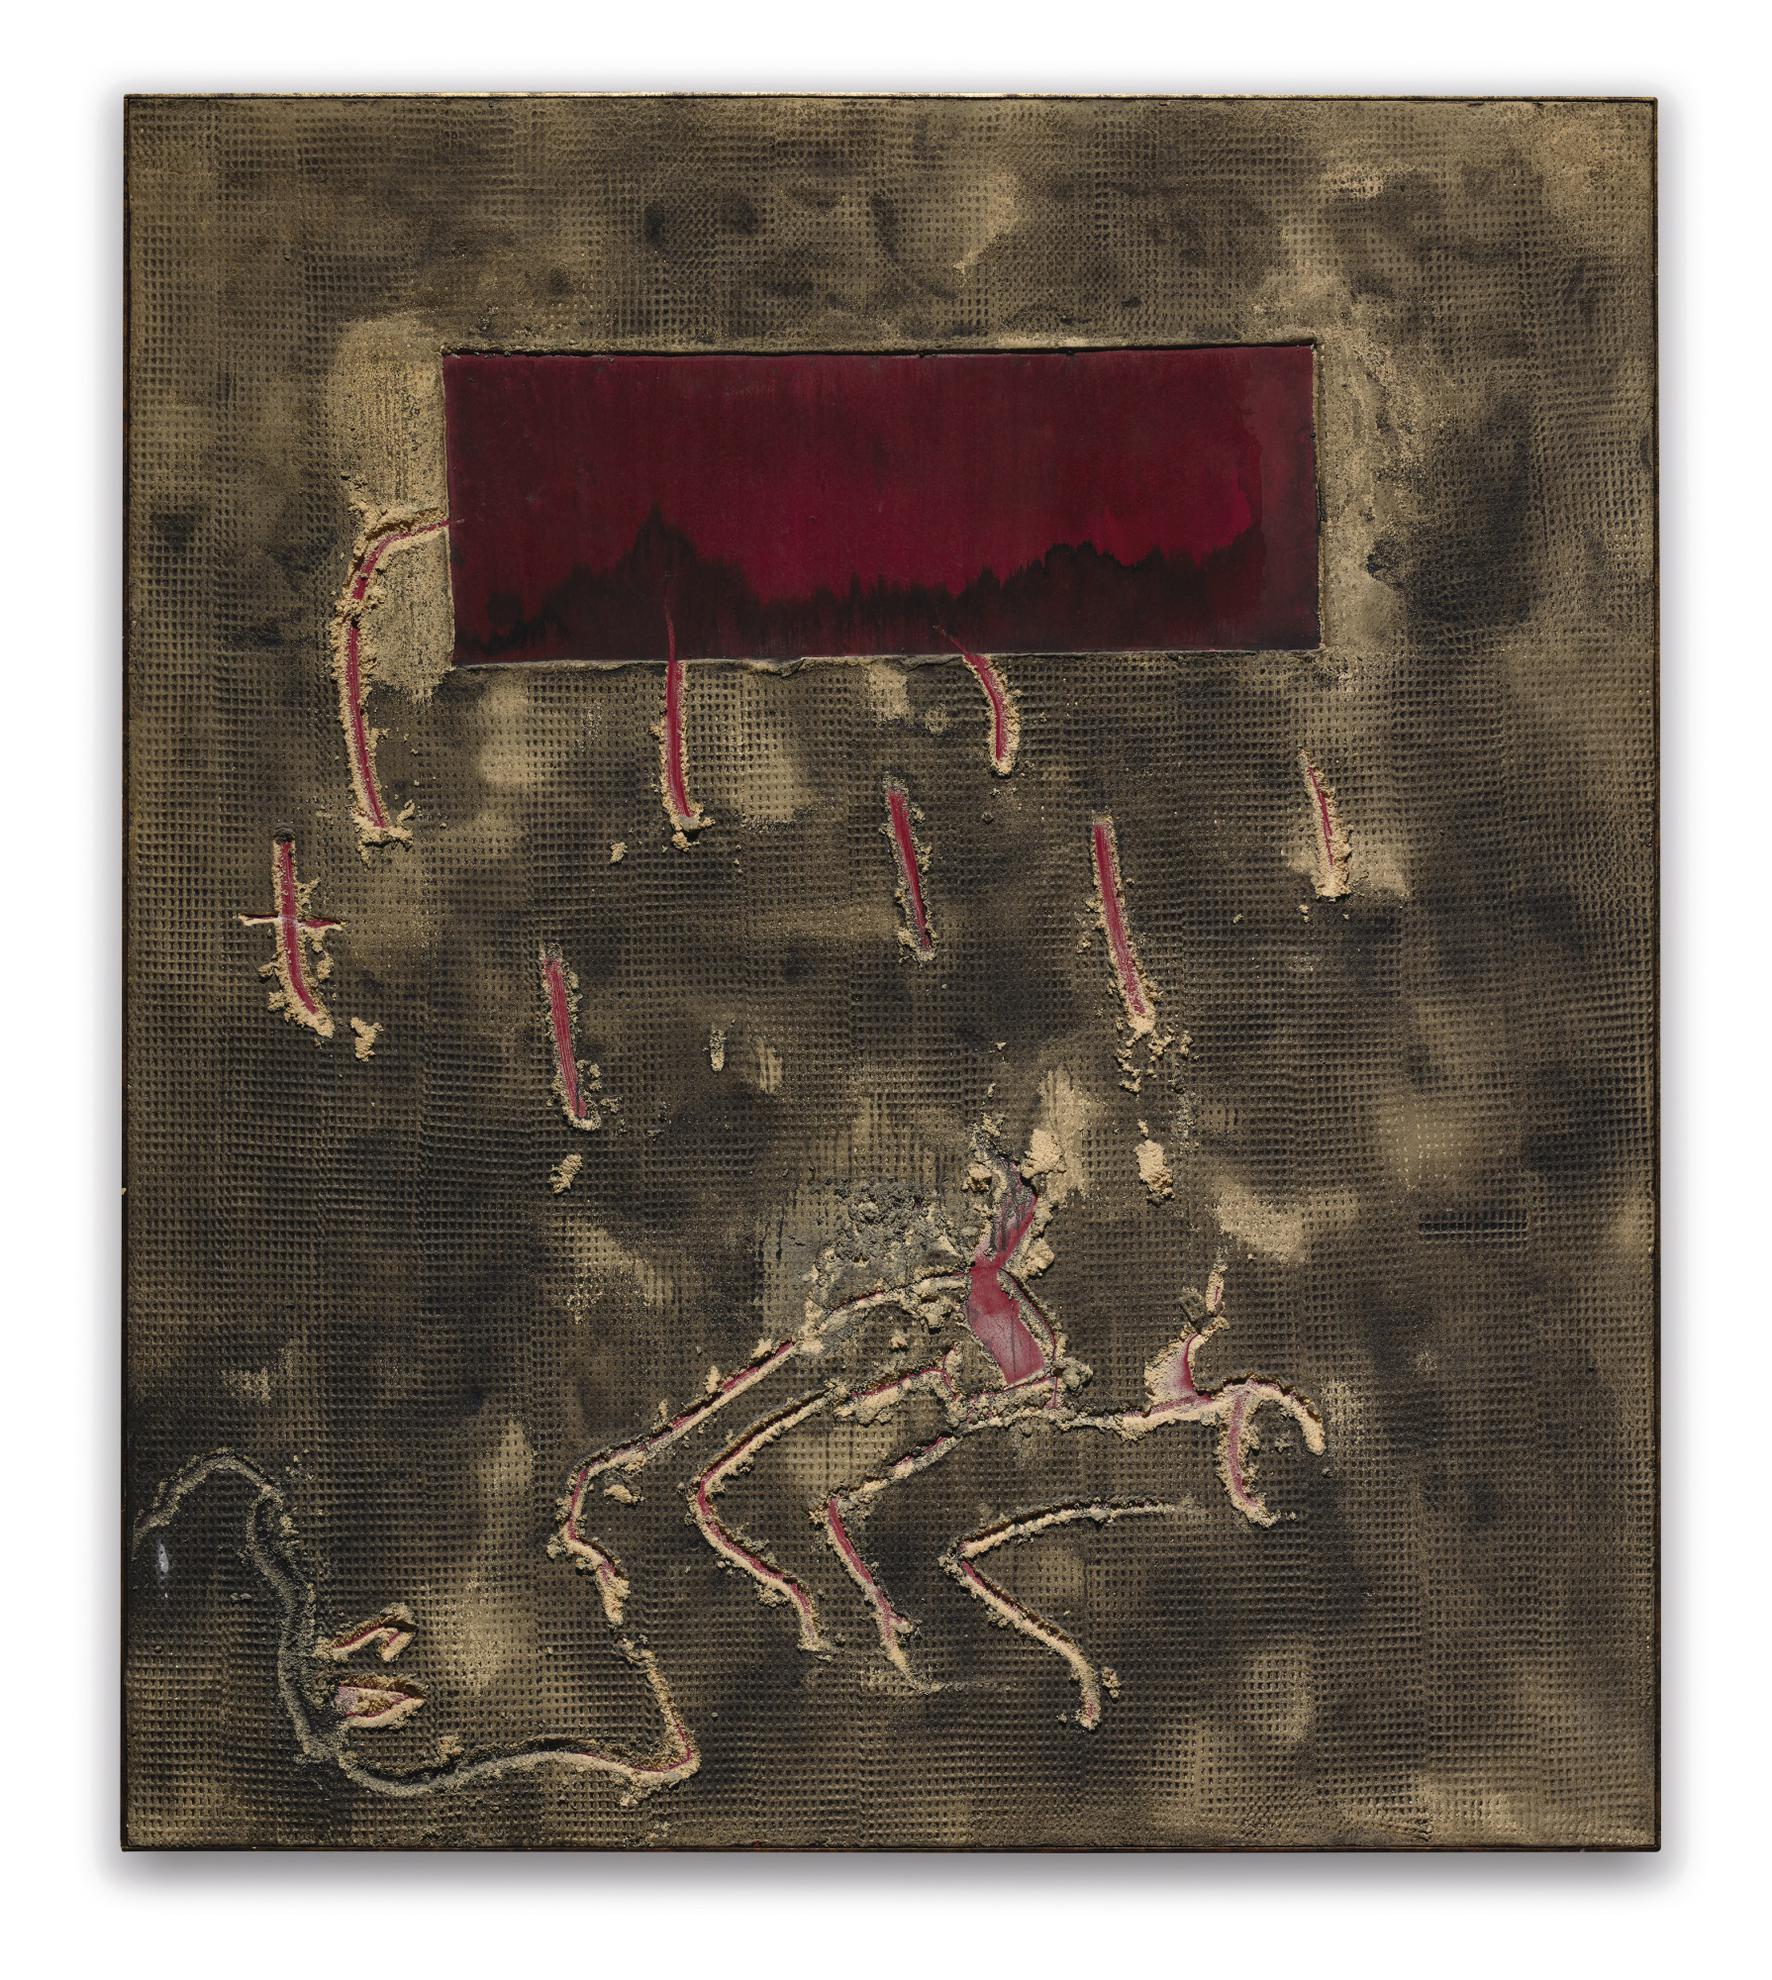 Antoni Tapies-Rectangle Vermell-2003